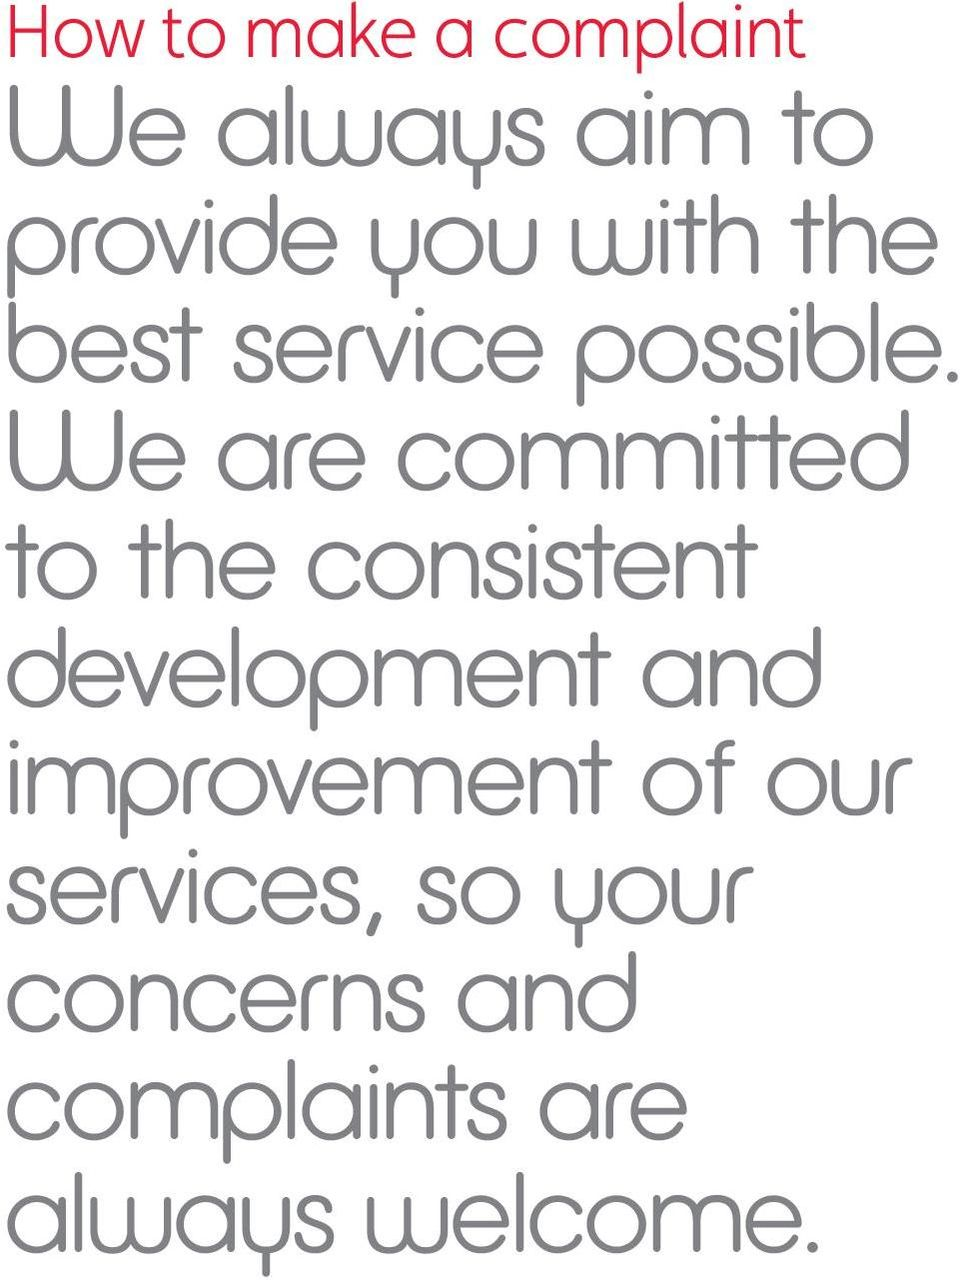 We are committed to the consistent development and